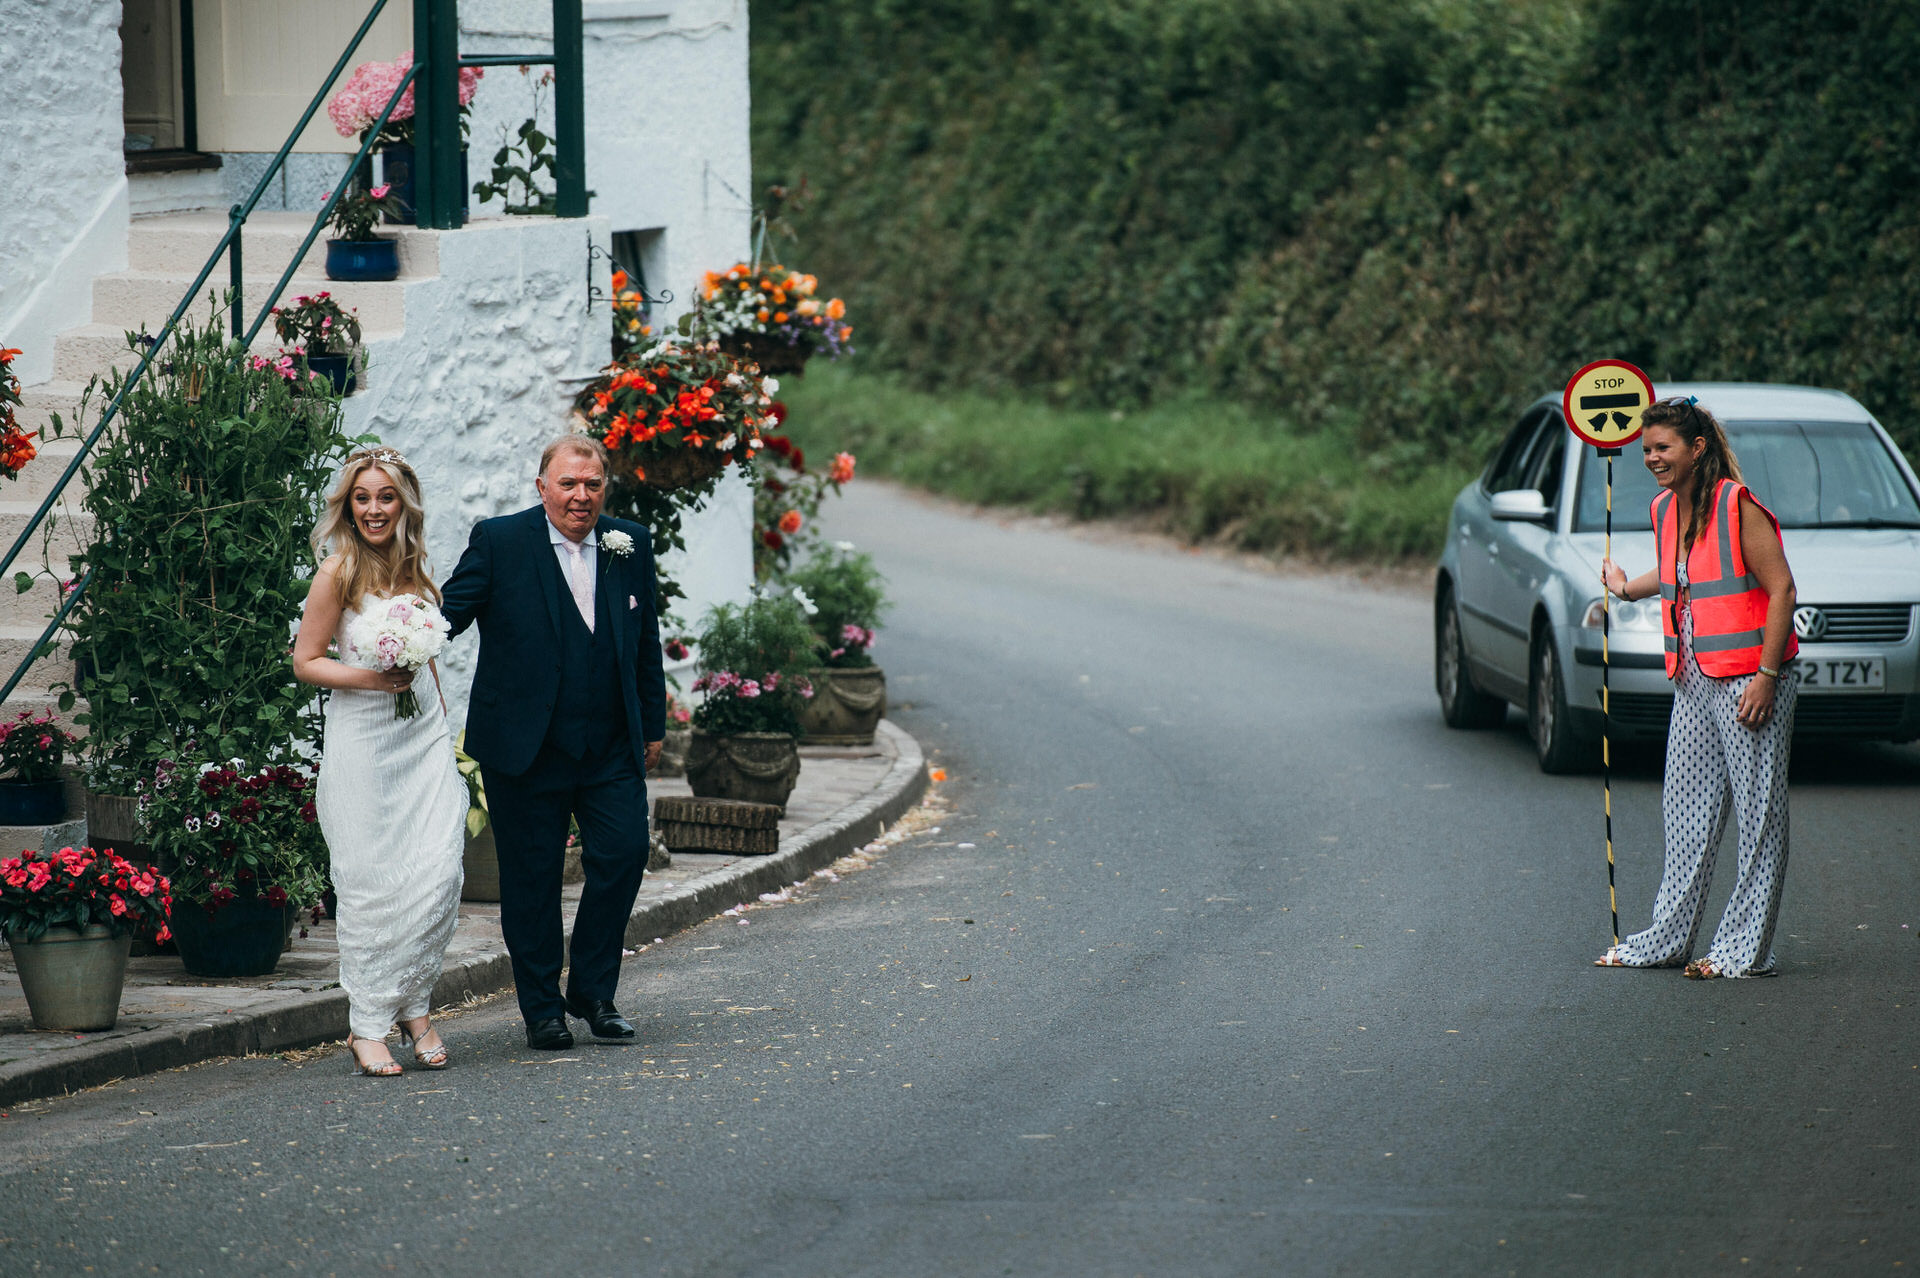 Bull Inn wedding photographer